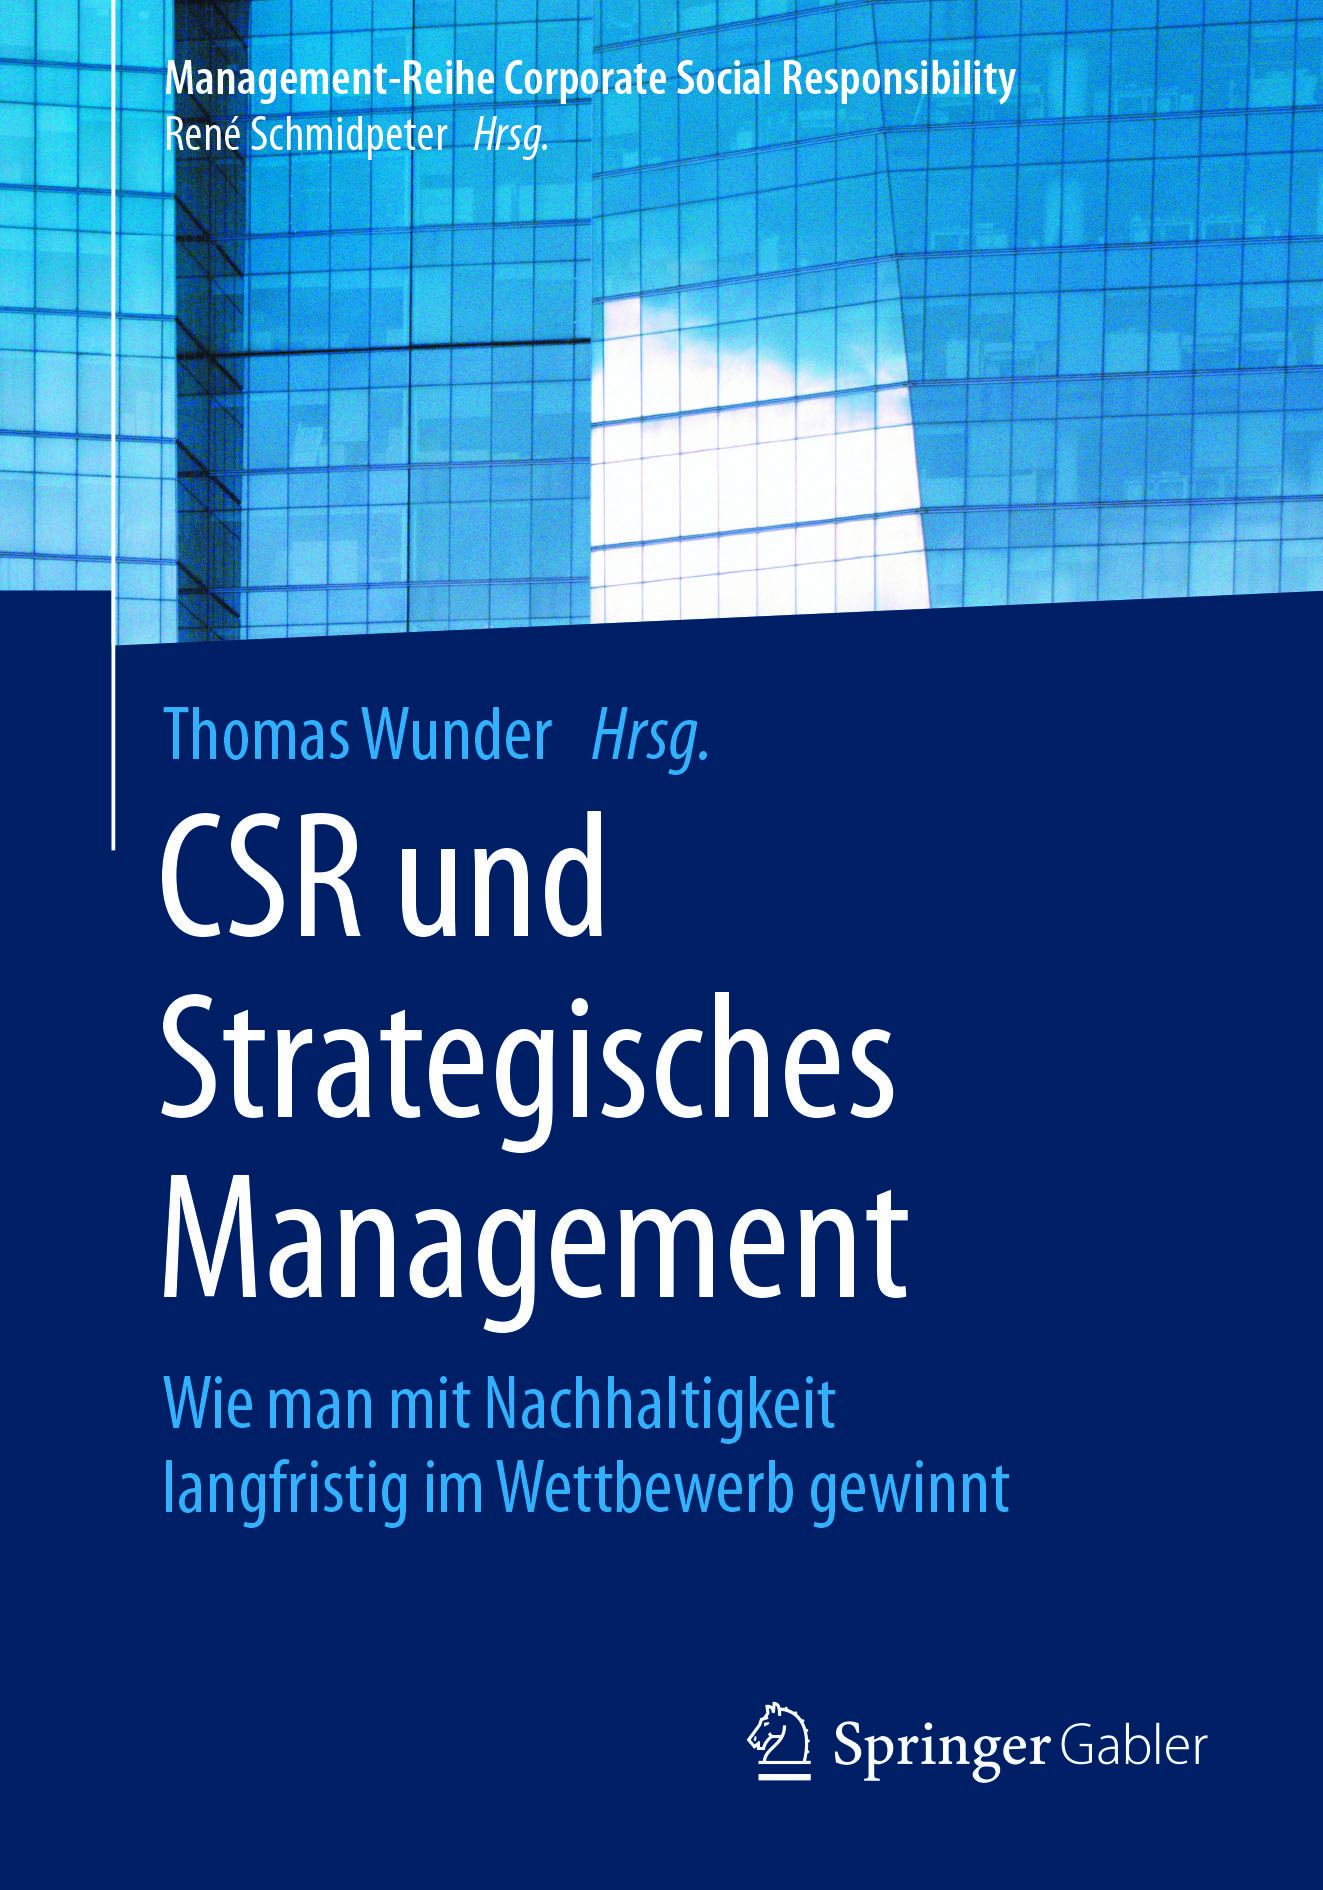 Wunder, Thomas - CSR und Strategisches Management, ebook